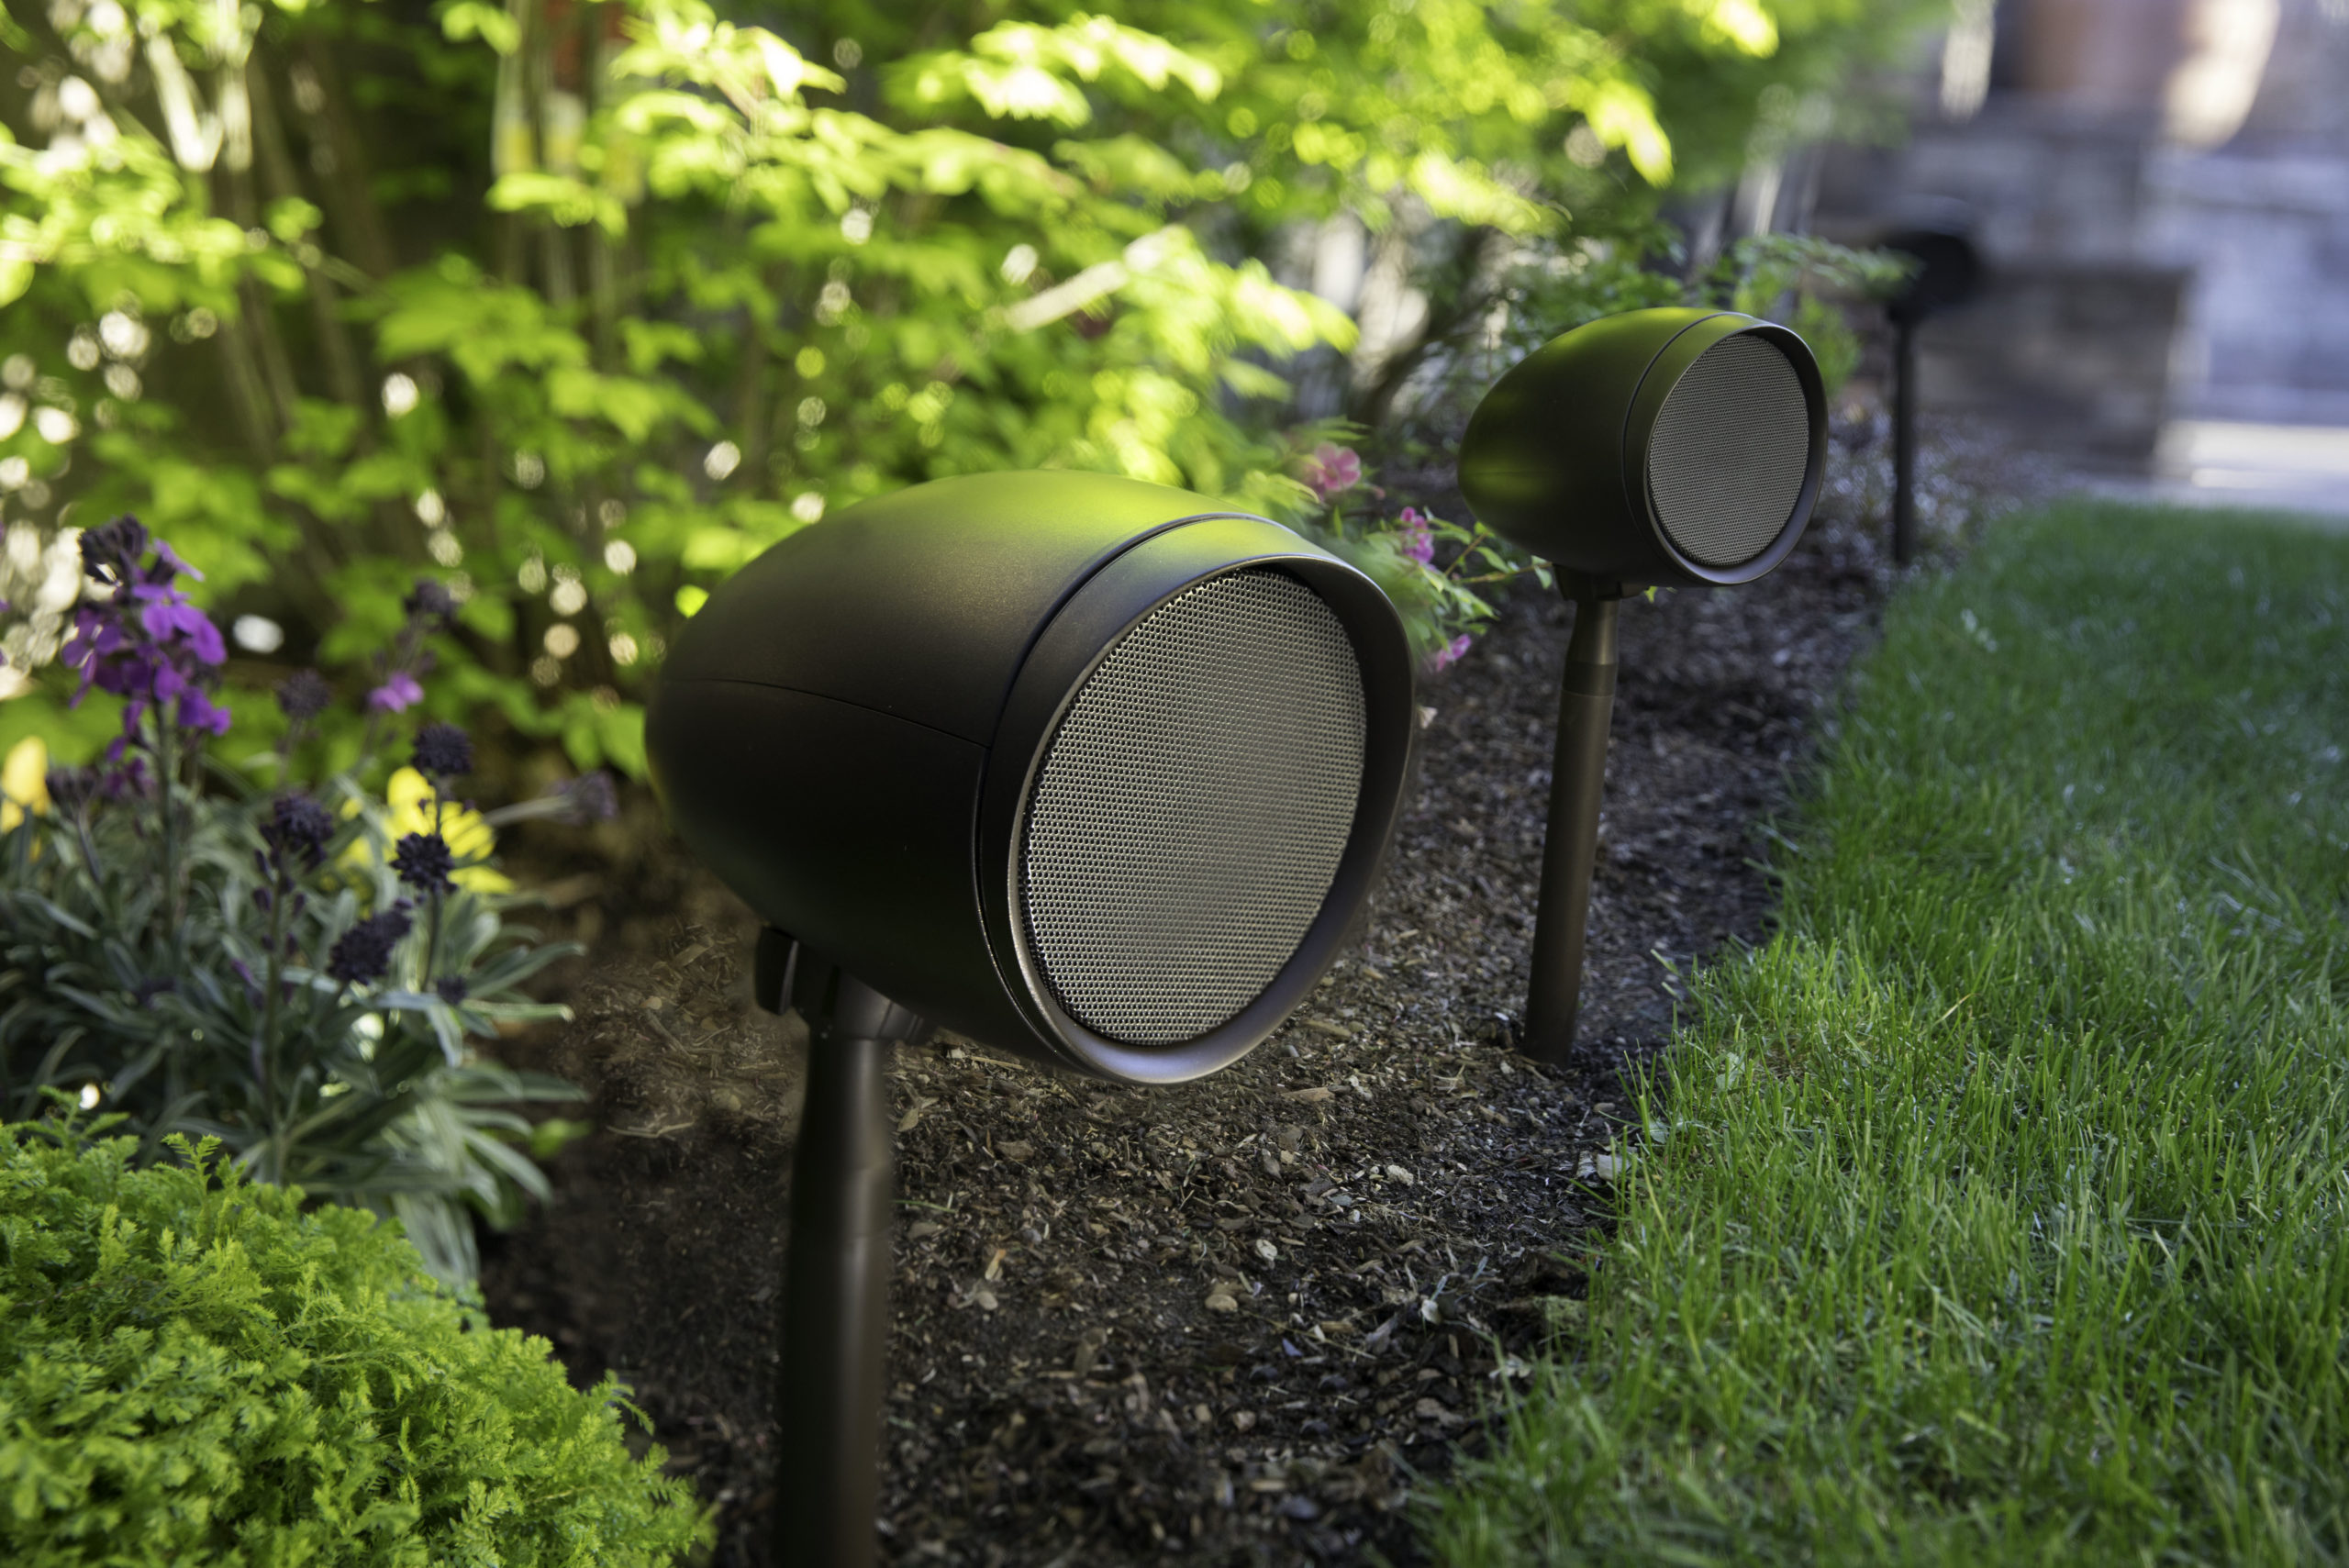 Triad Garden speakers